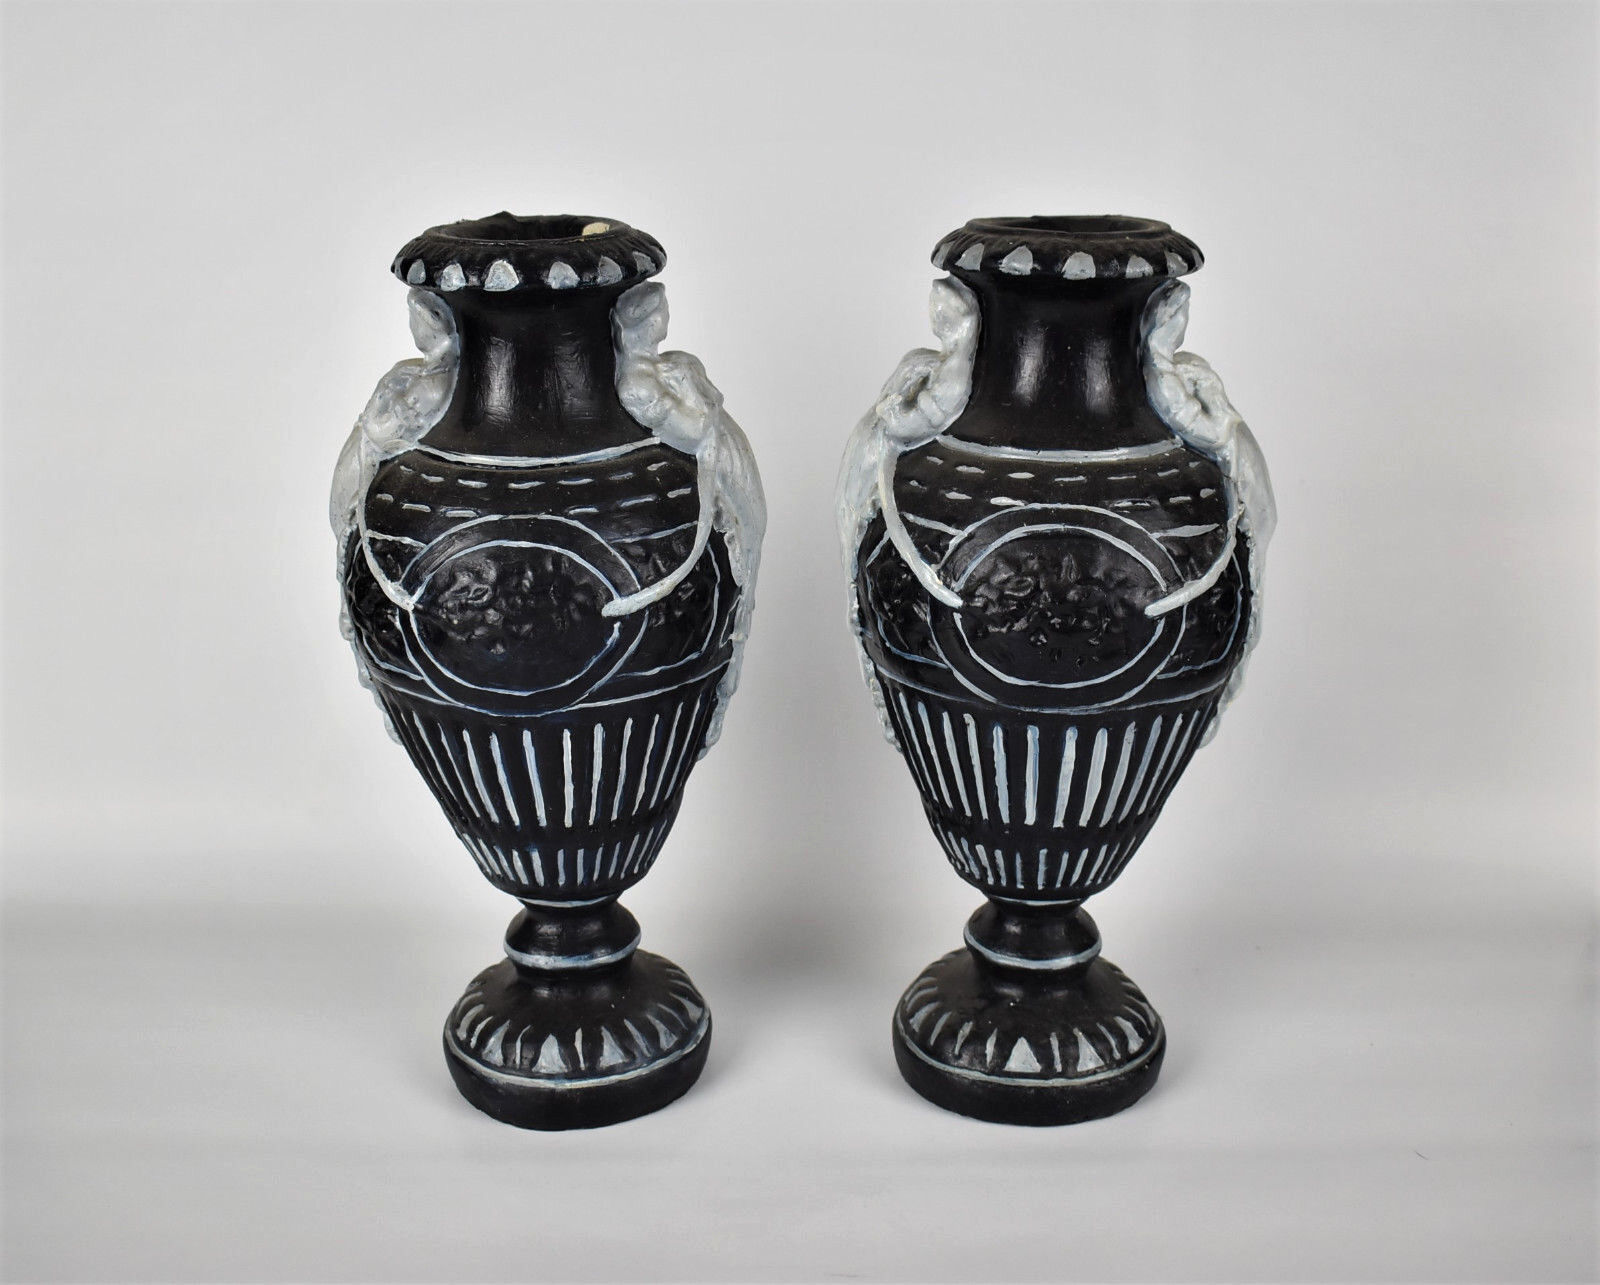 Rare Pair Of Antique French Chalkware / Plaster Urn Vases Ca. 1900